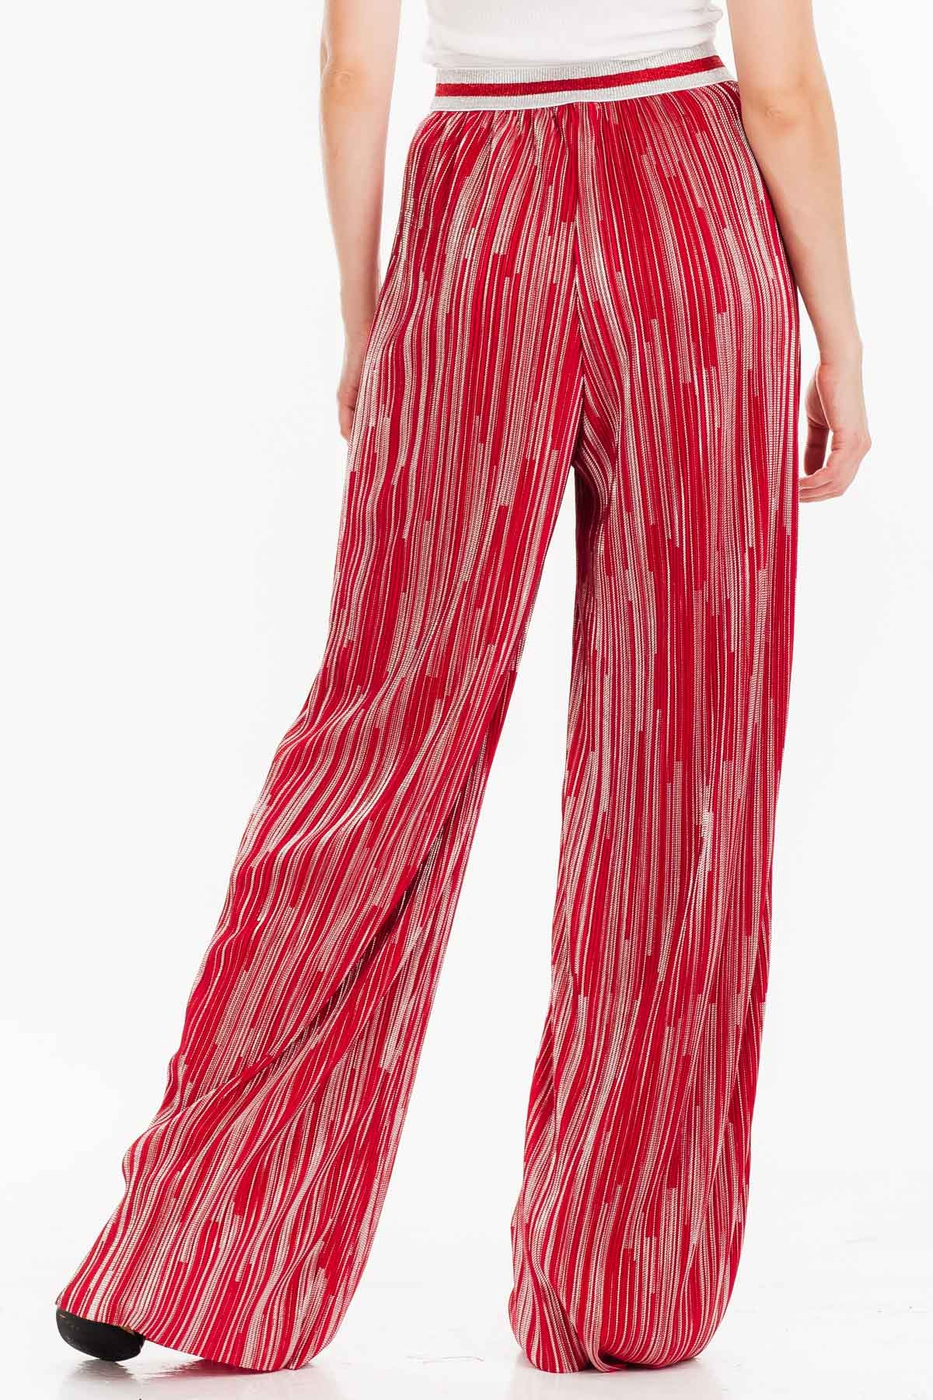 METALLIC STRIPED LONG WIDE PANTS  - orangeshine.com